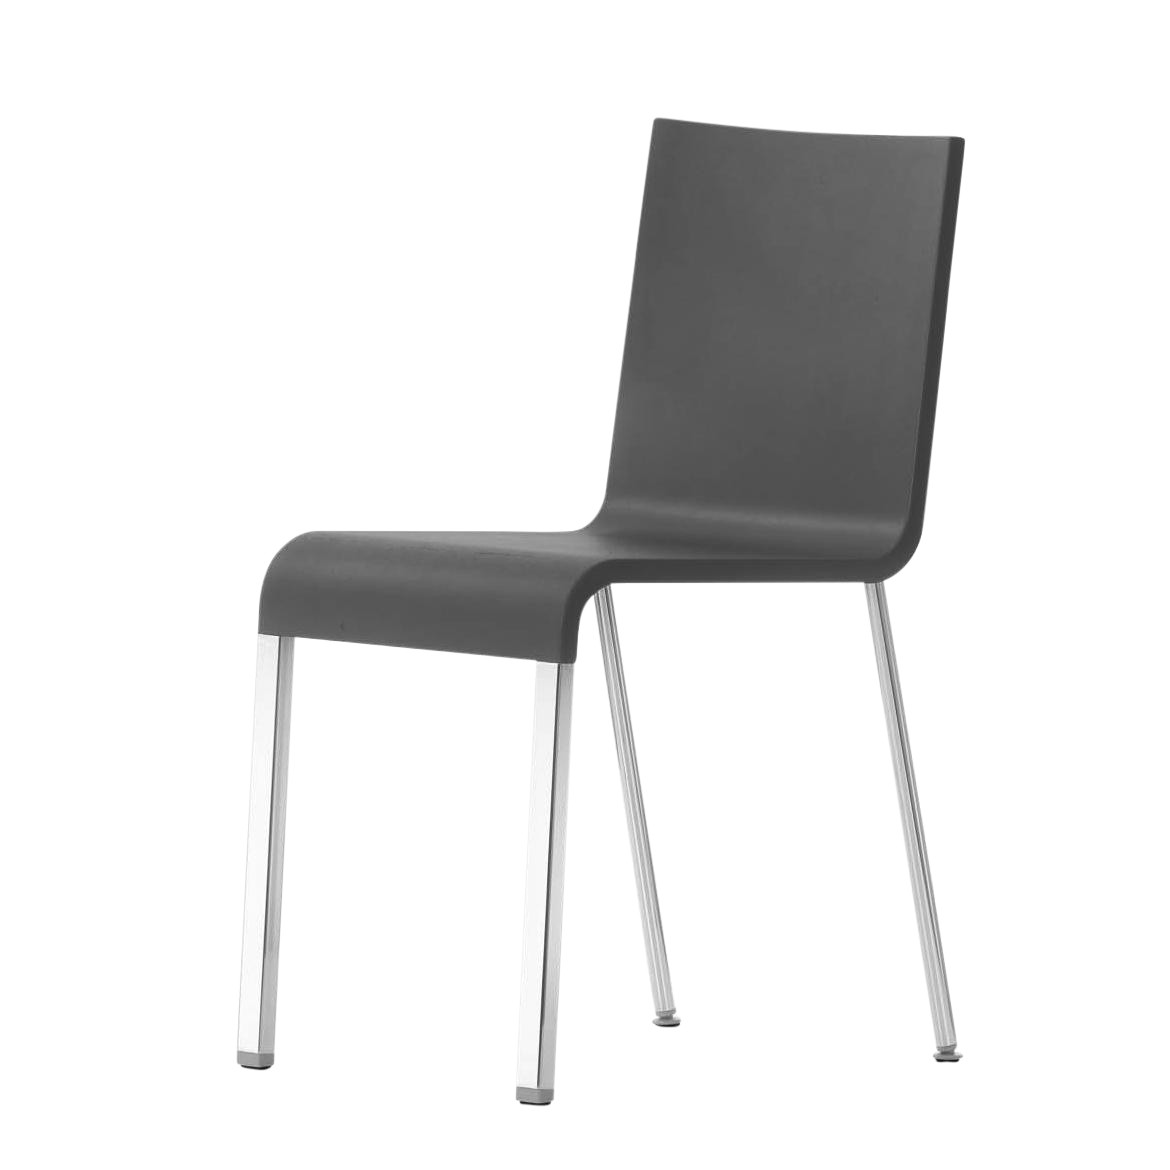 Vitra 03 Chair Not Stackable Chrome Plated Base Ambientedirect